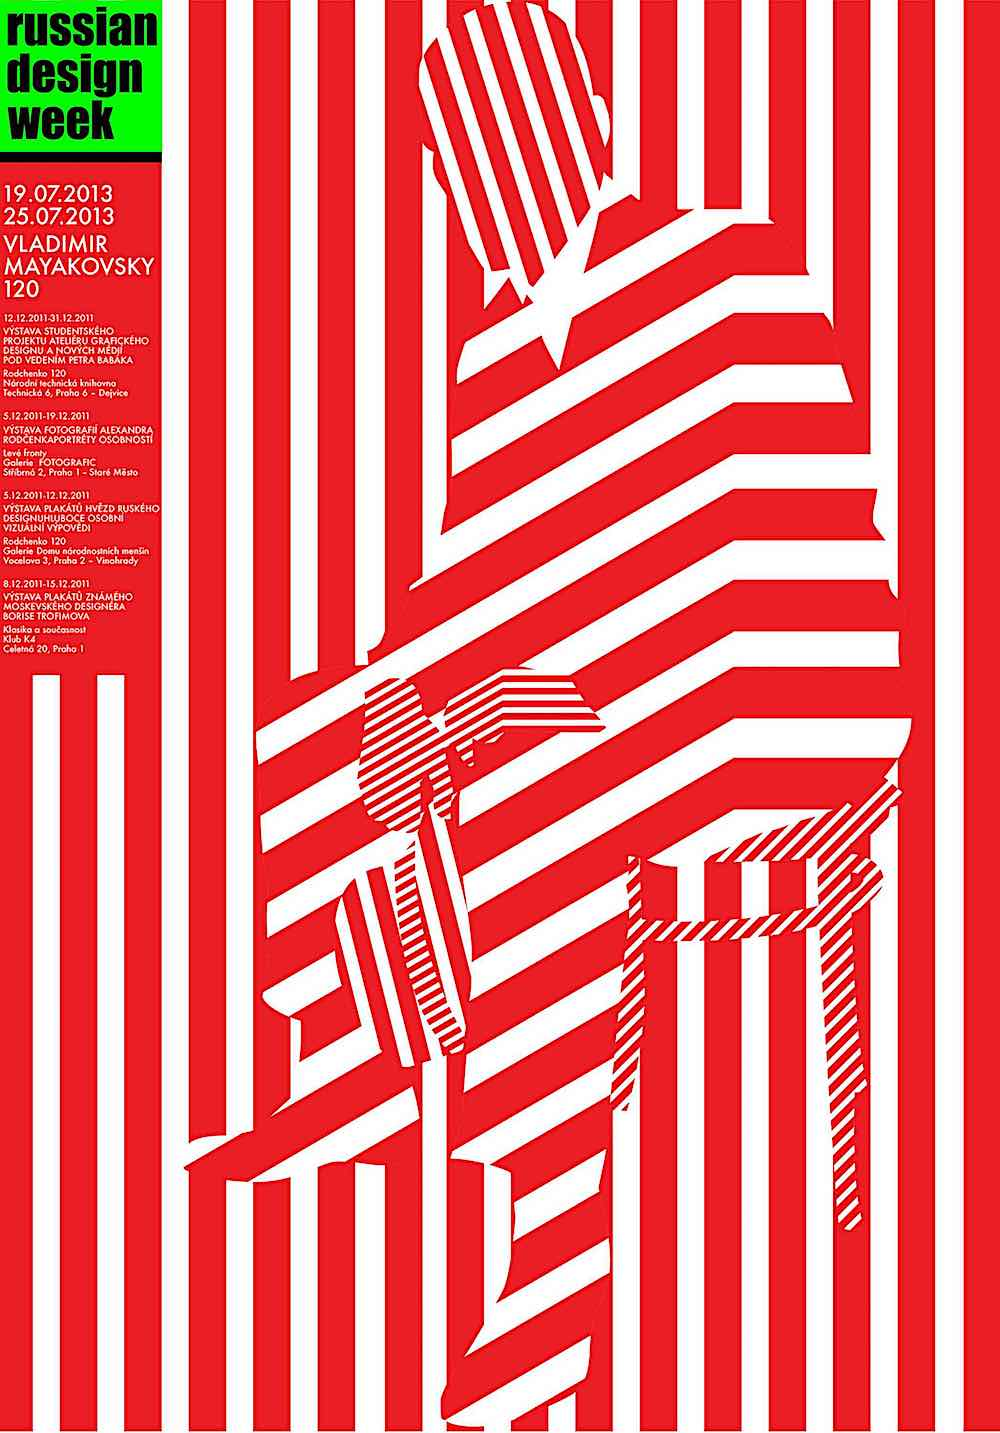 a Kulachek Russian Design poster in red stripes, a man sitting